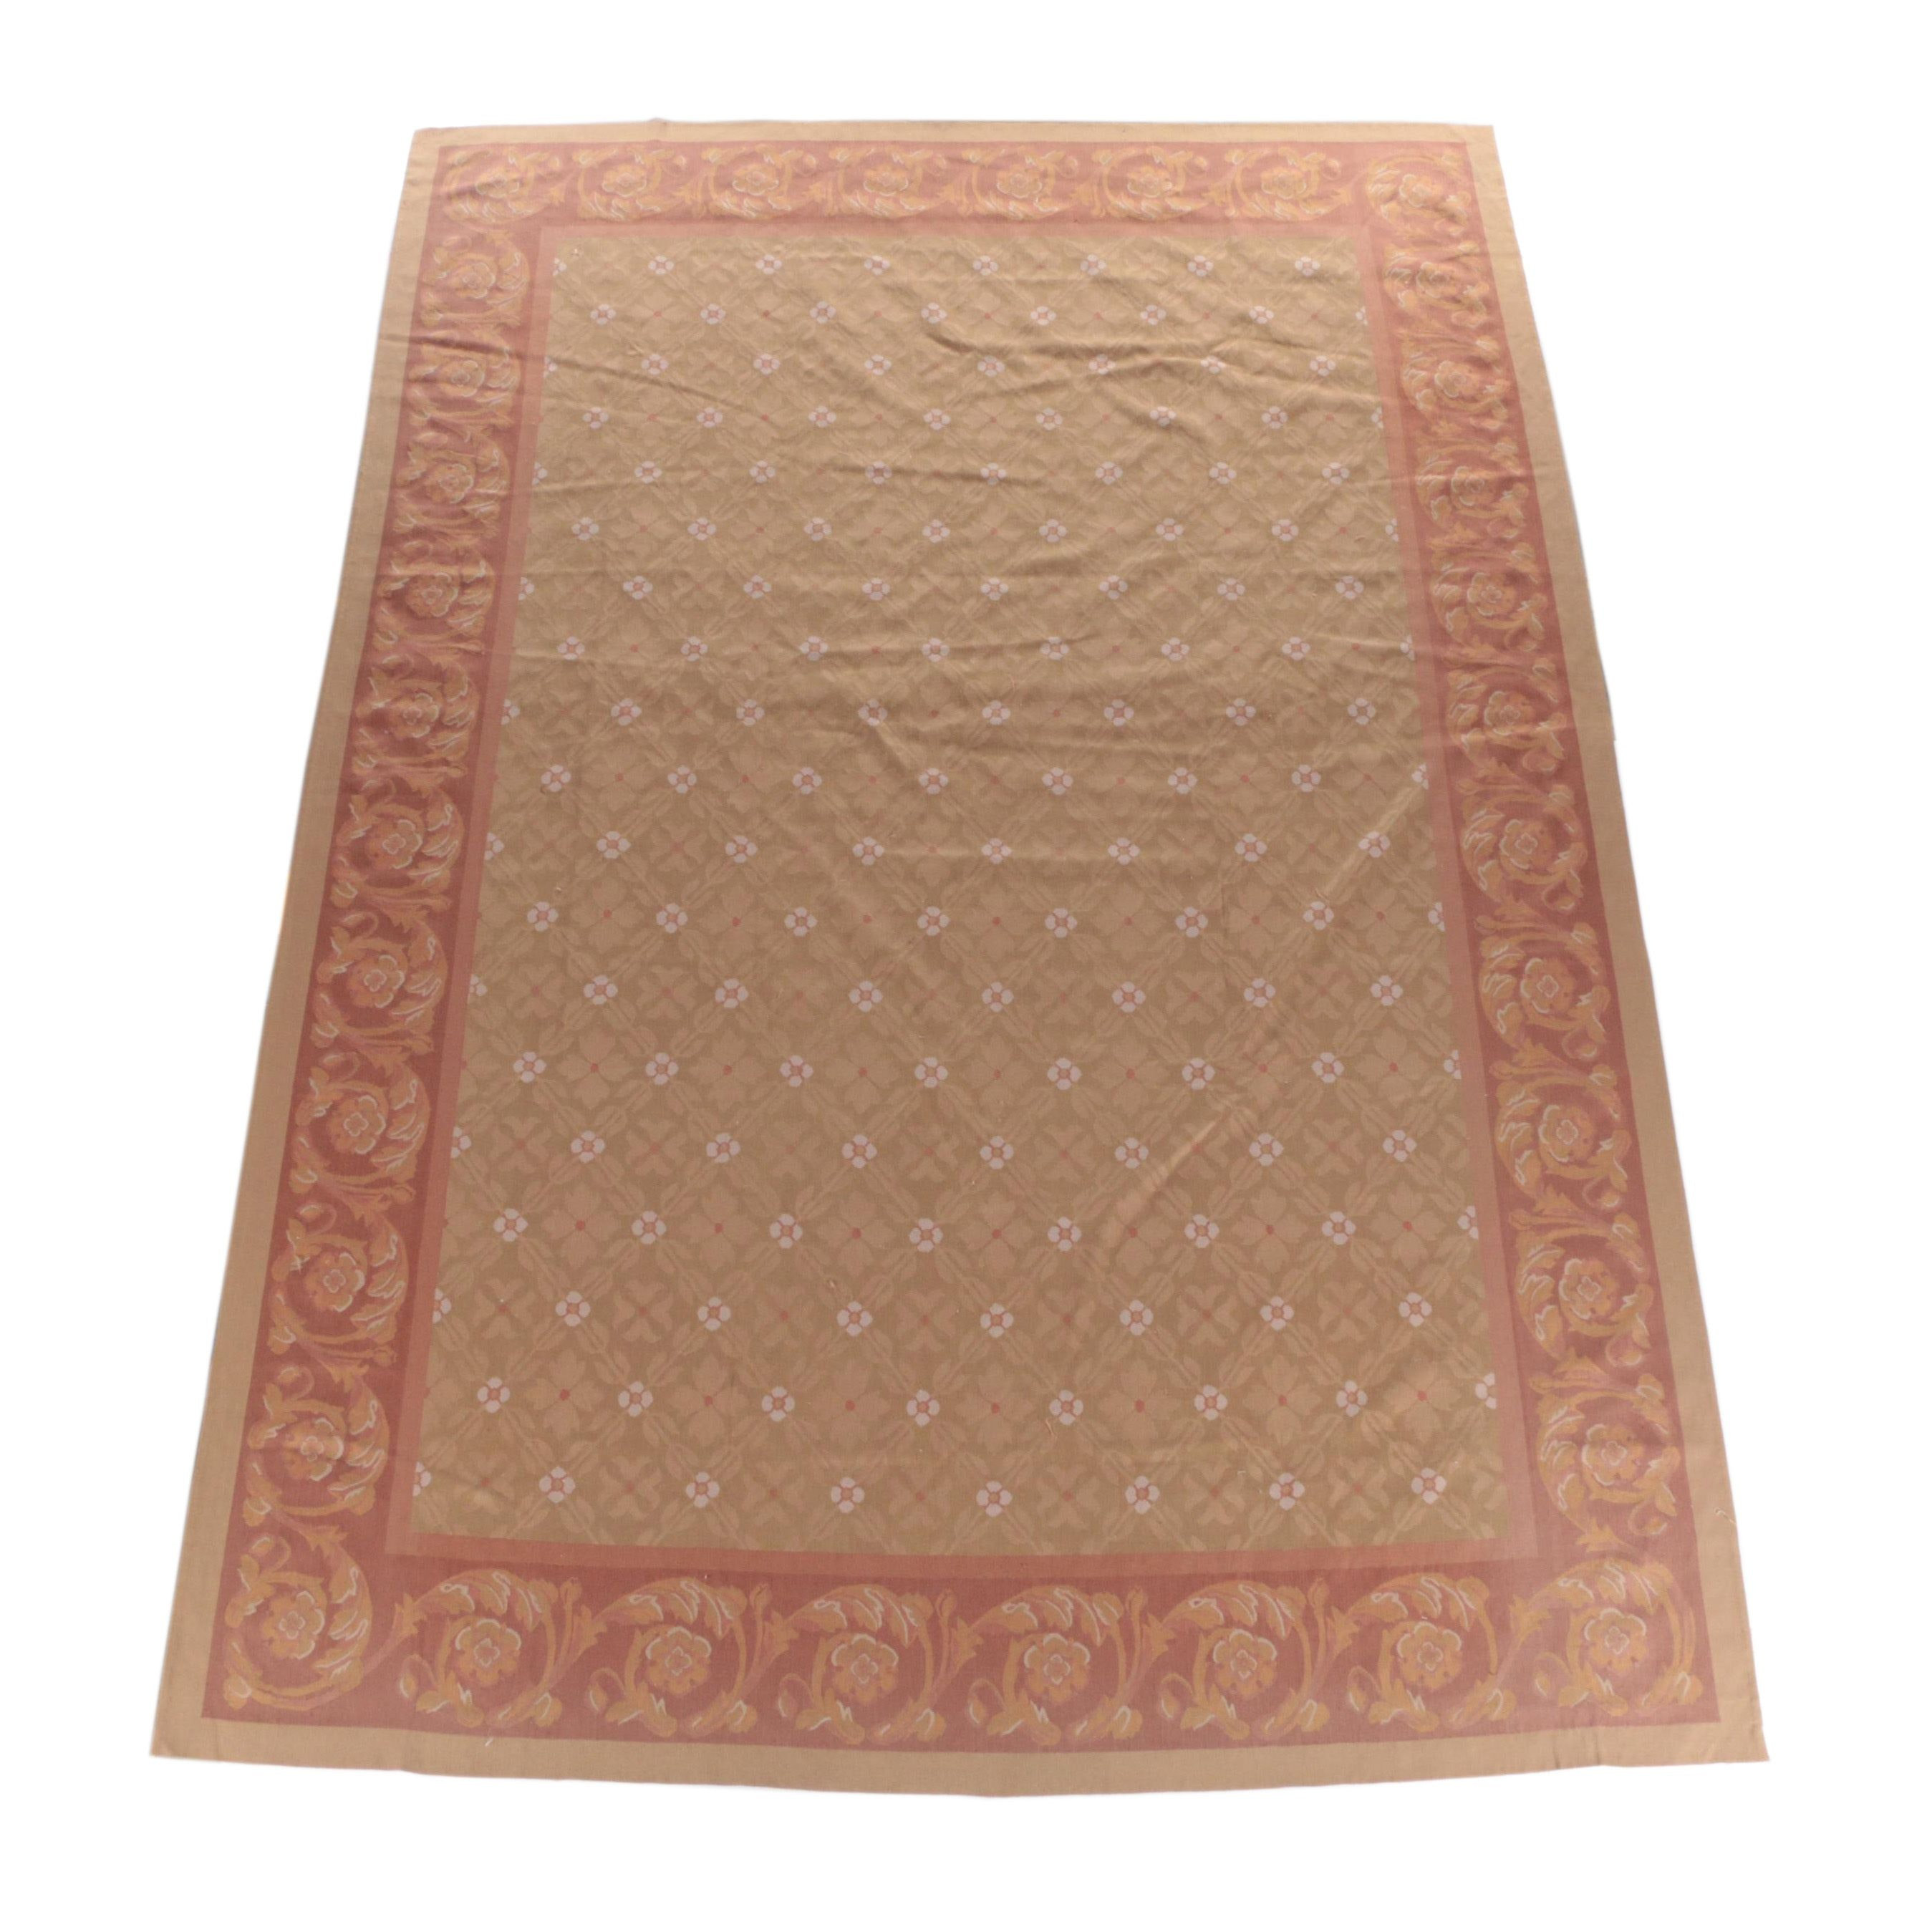 Flatweave Transitional Wool Area Rug